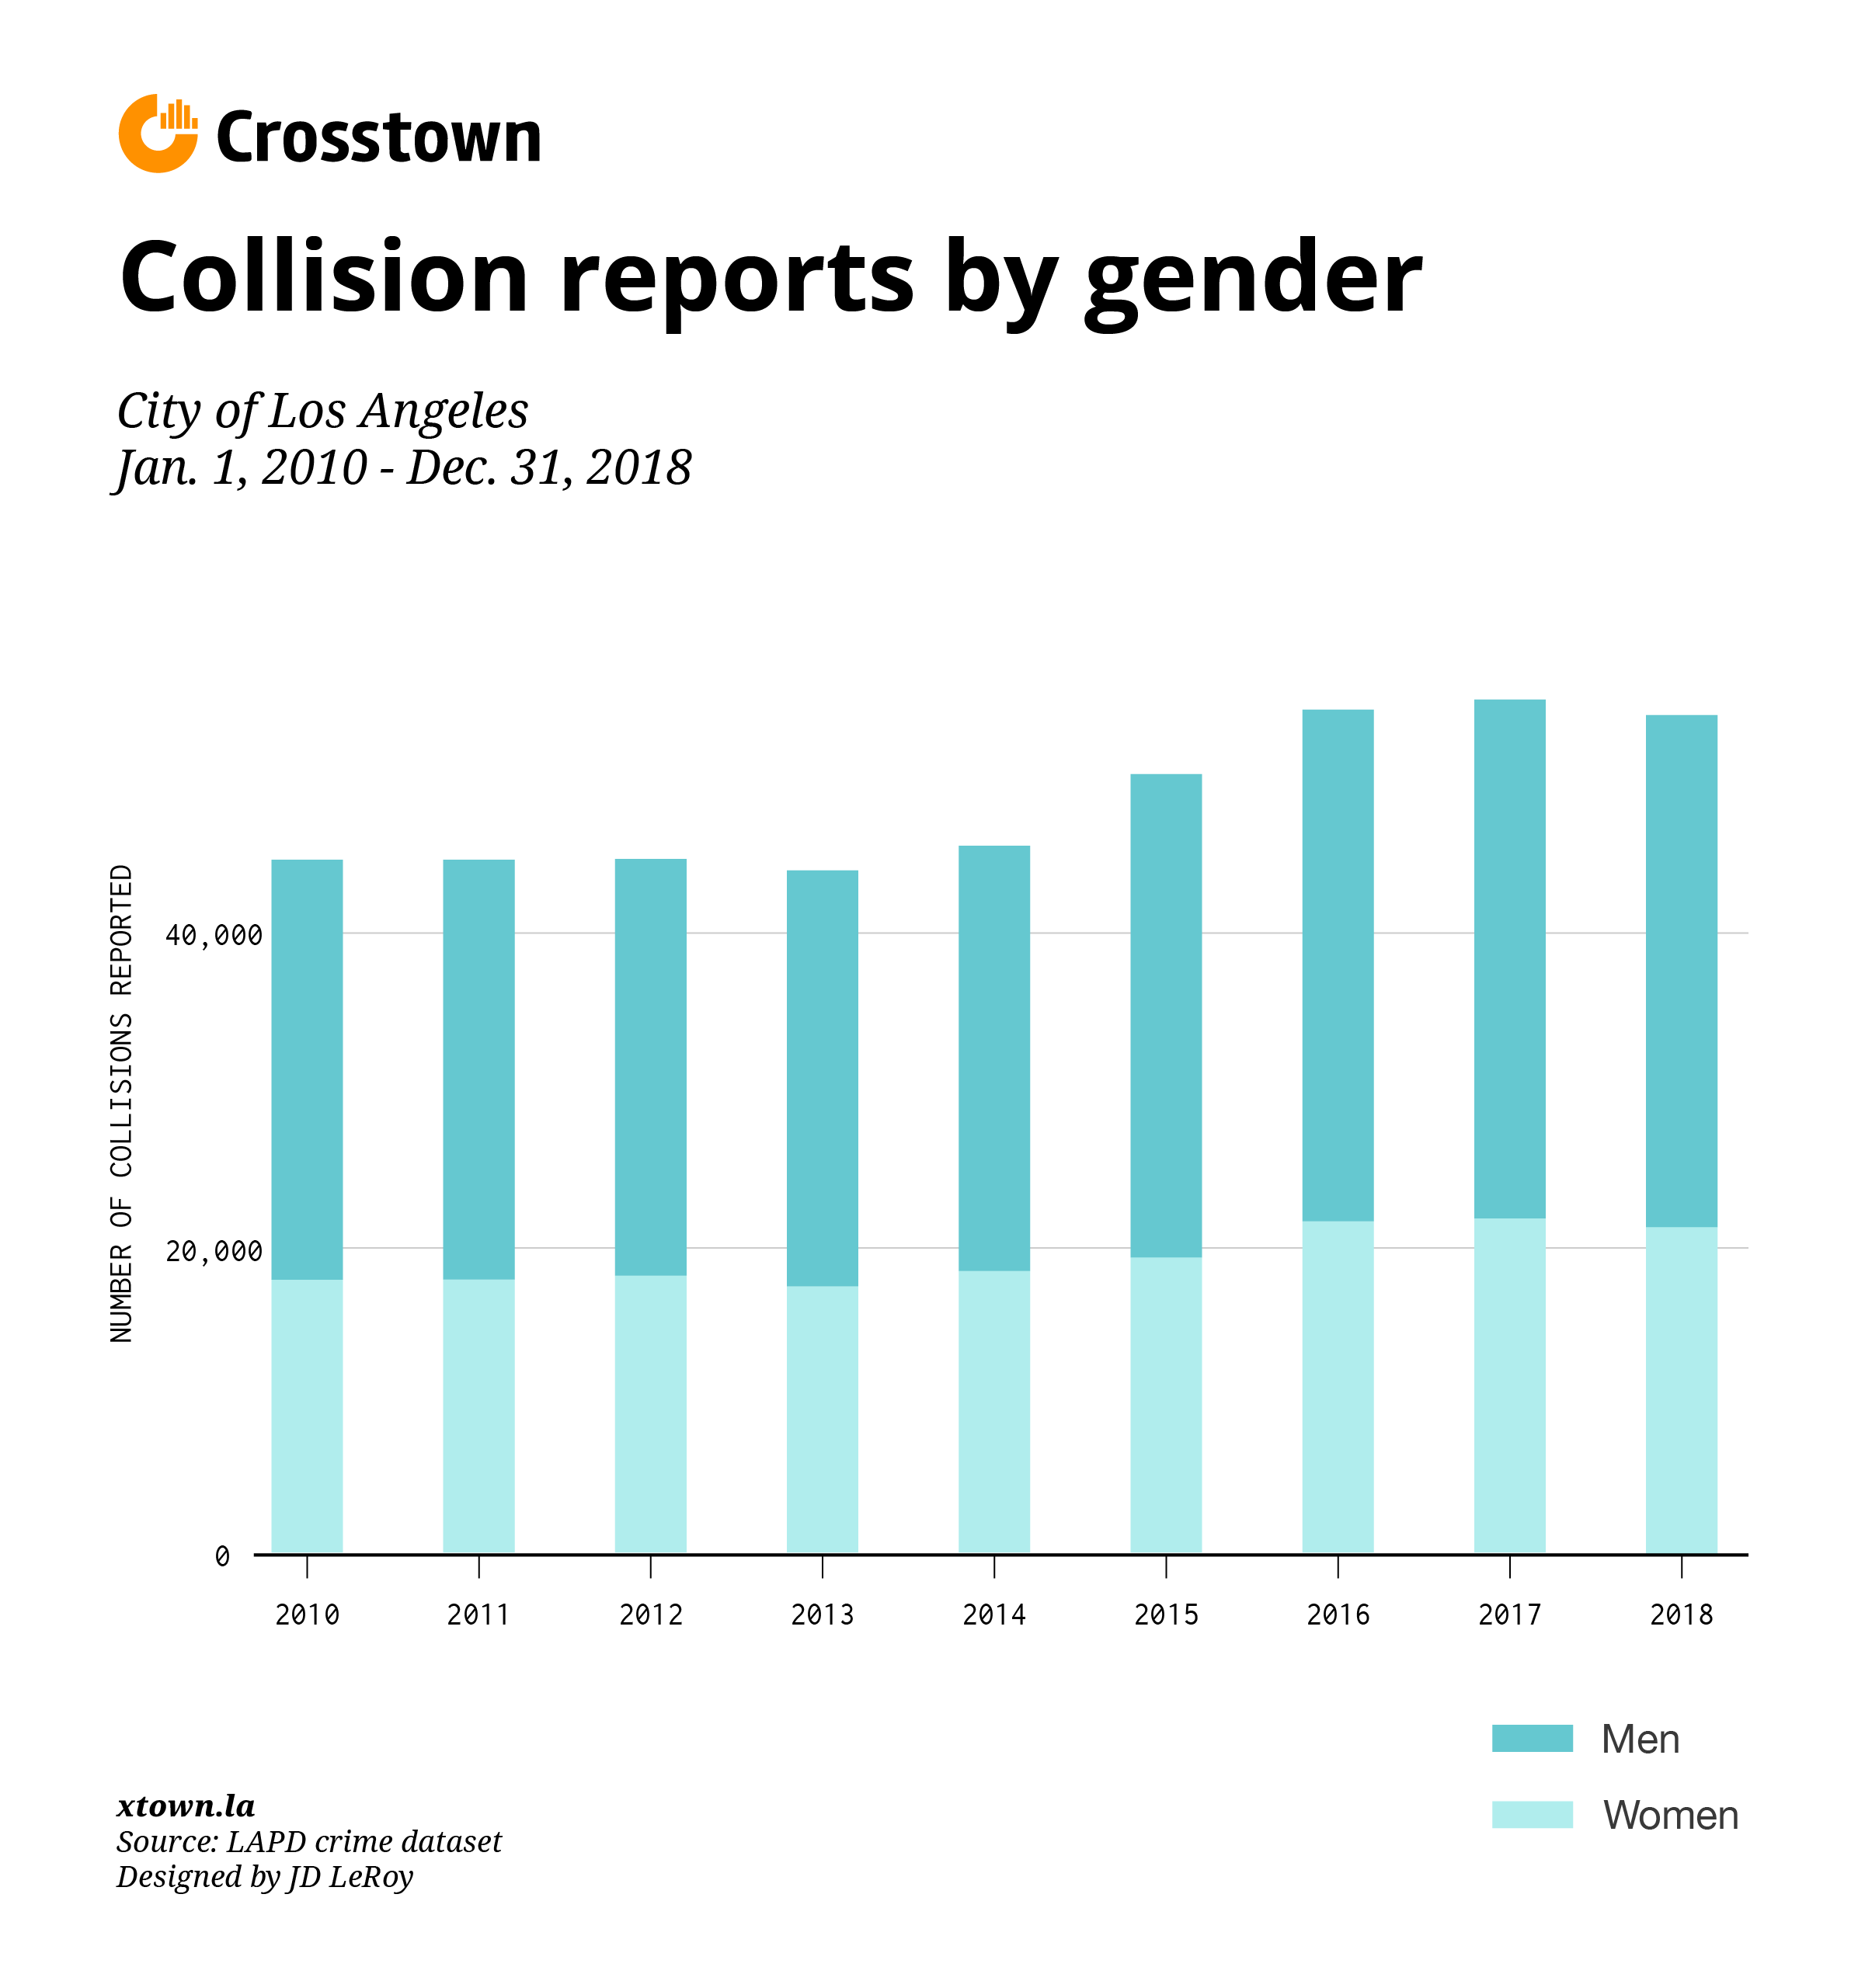 Men cause 60 percent of car accidents since 2010 in LA bar graph